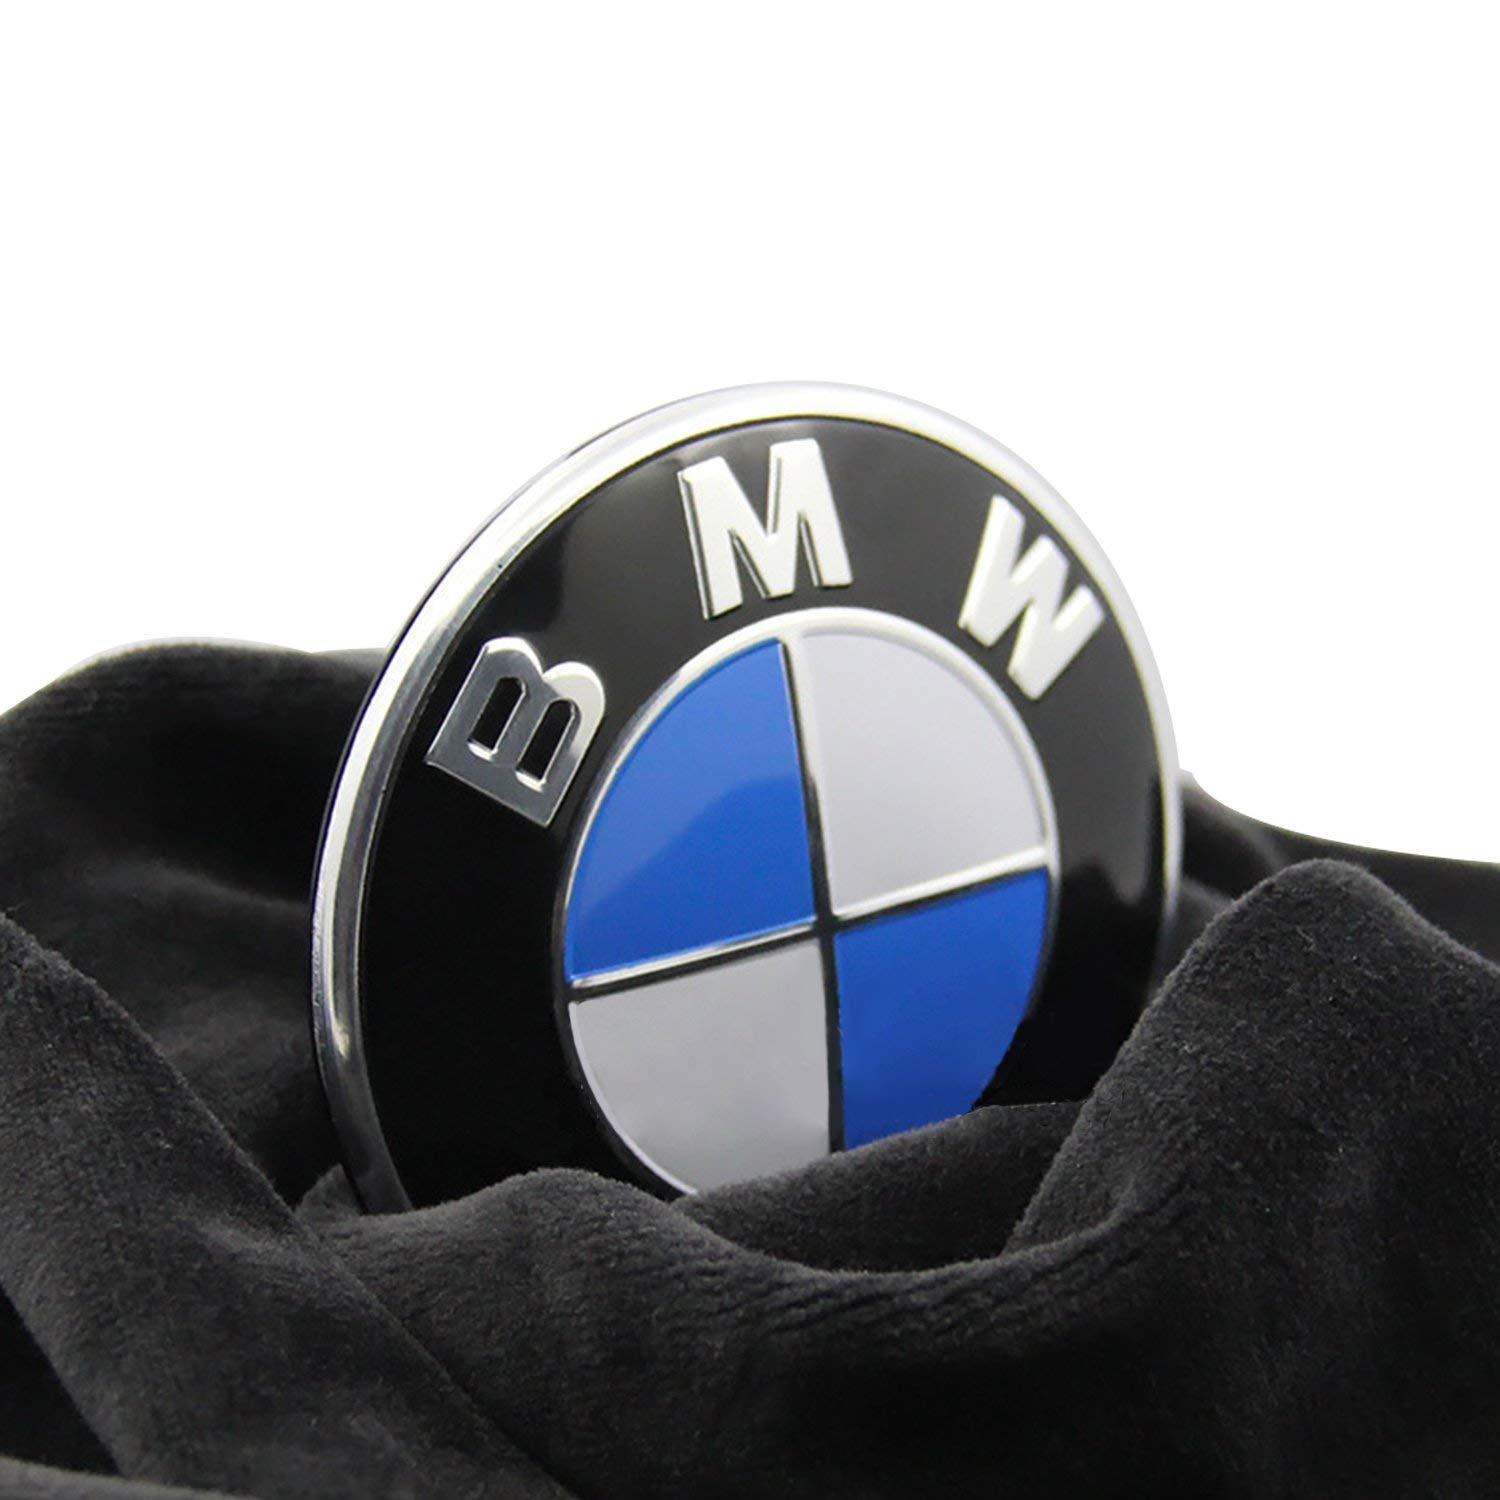 Pw Bmw Emblem Logo Replacement For Hood Trunk 82mm For All